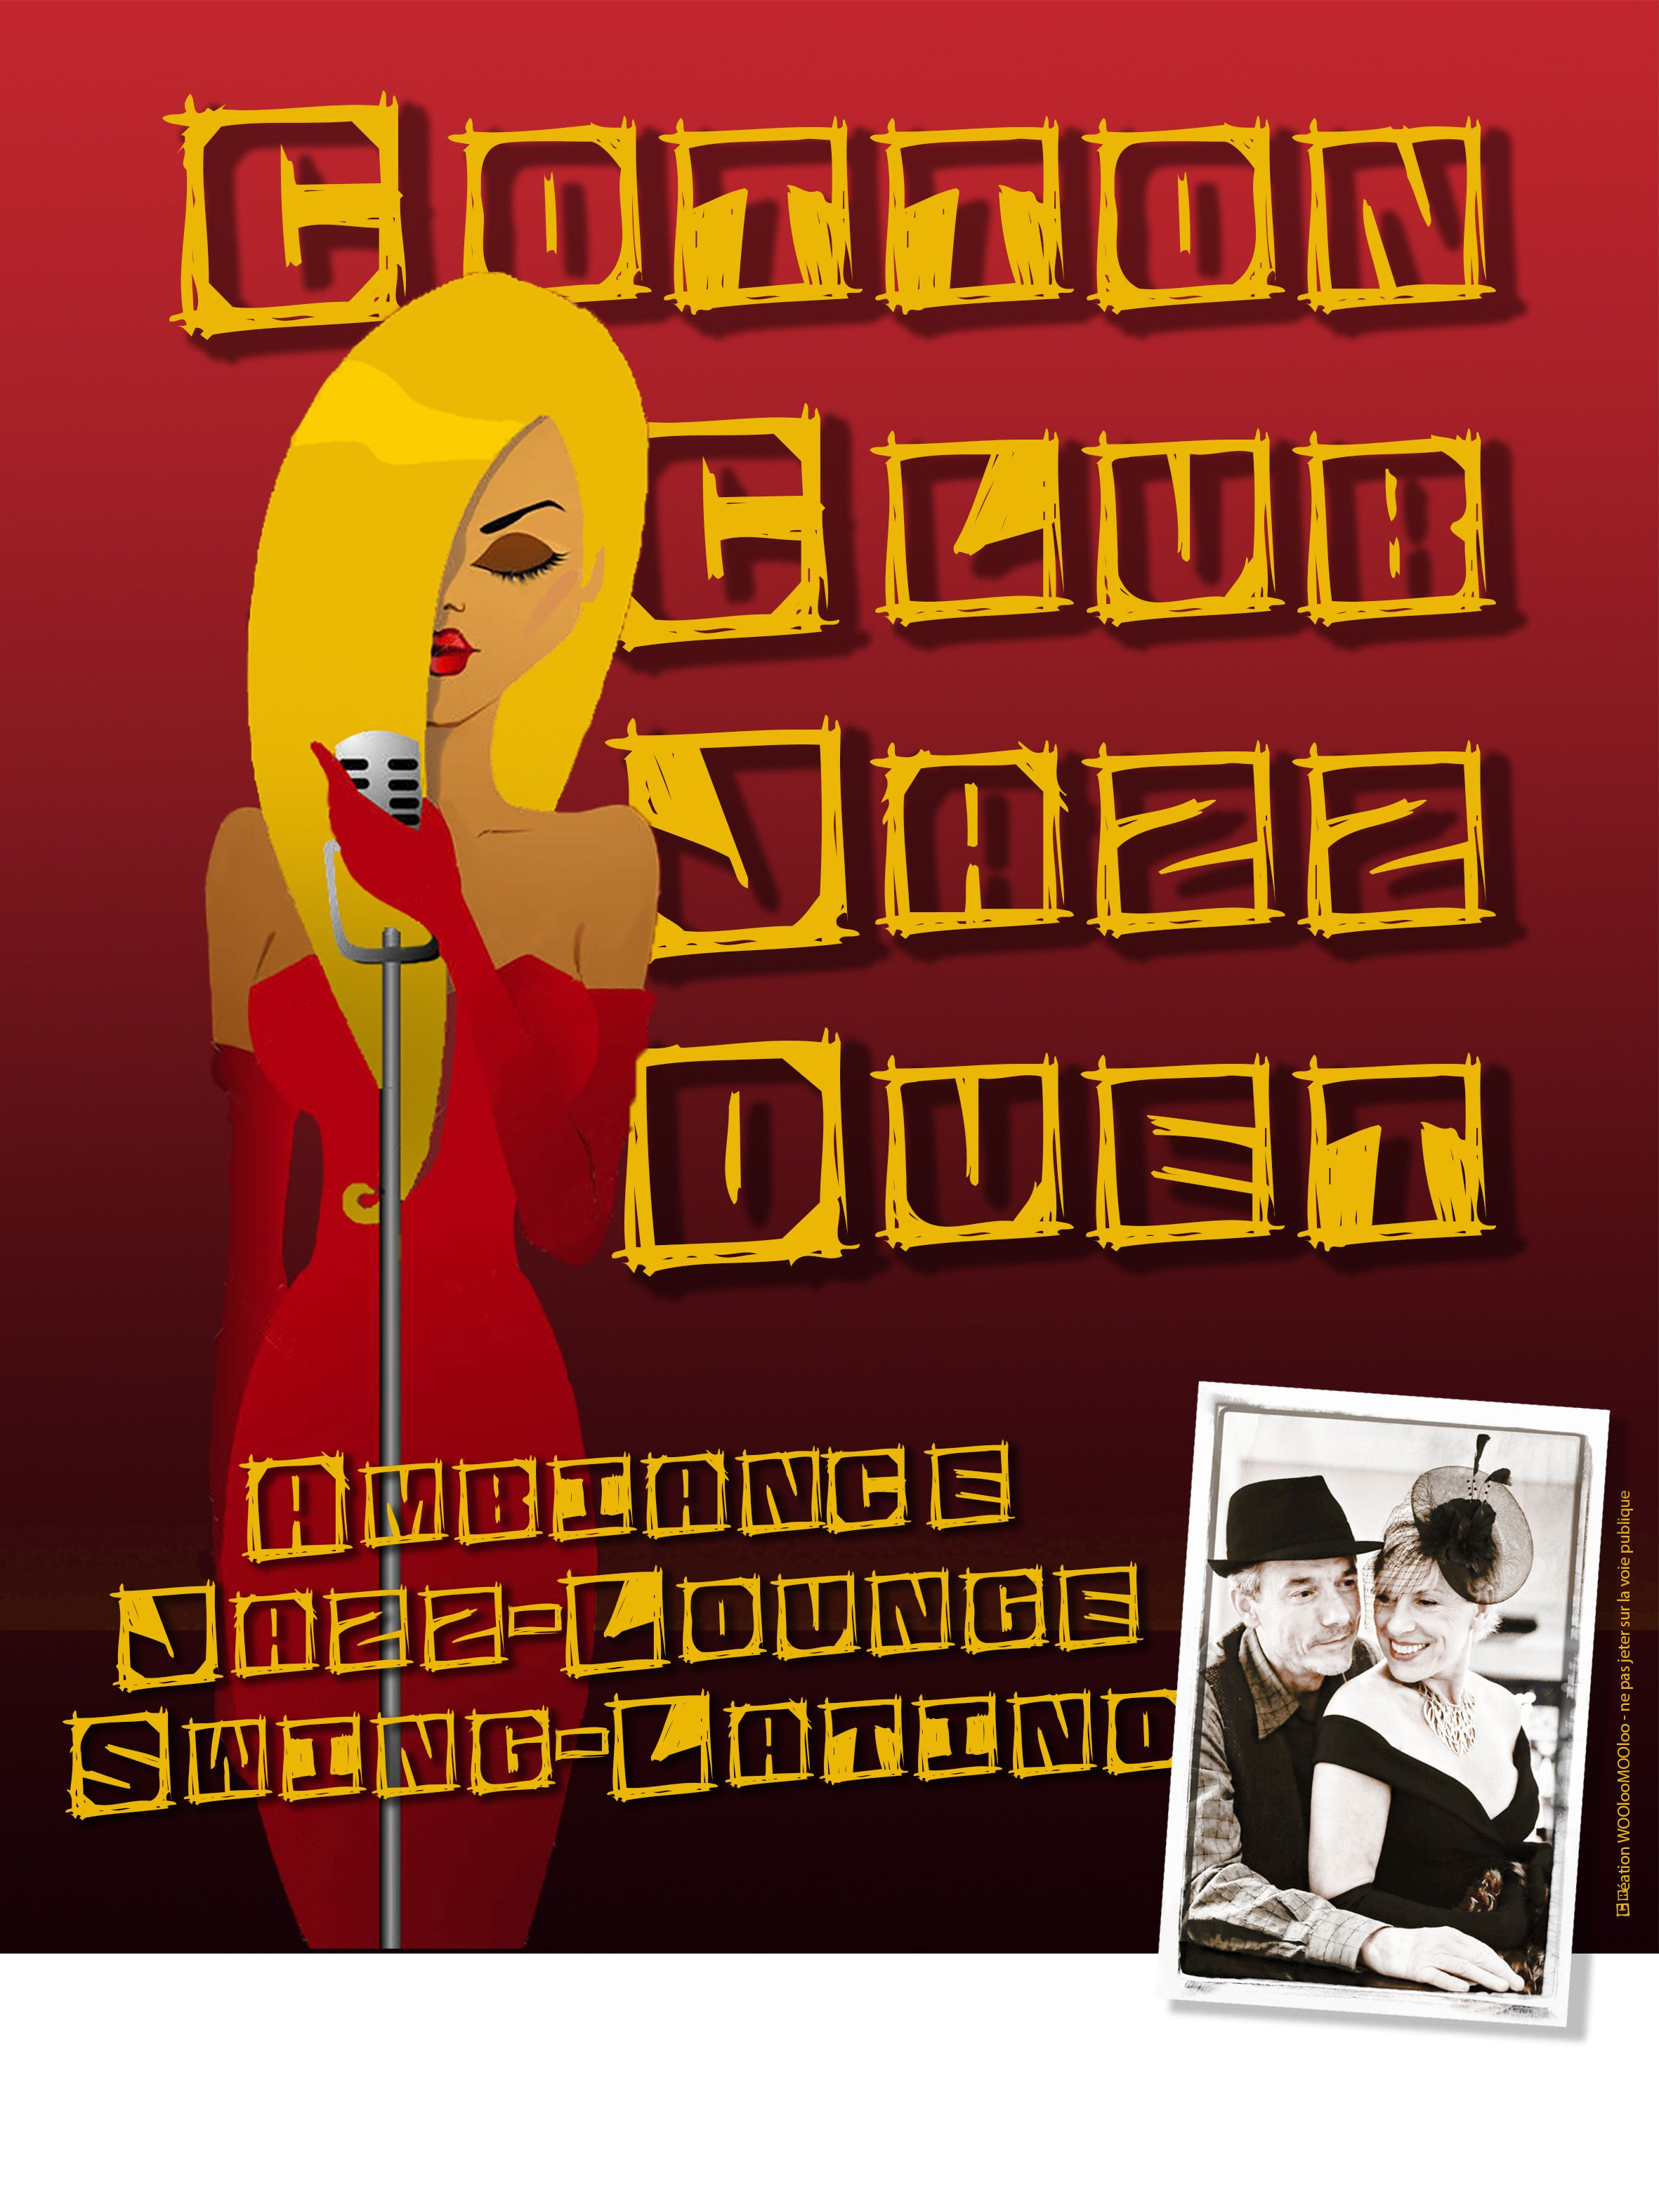 Affiche, Cotton Club Jazz Duet